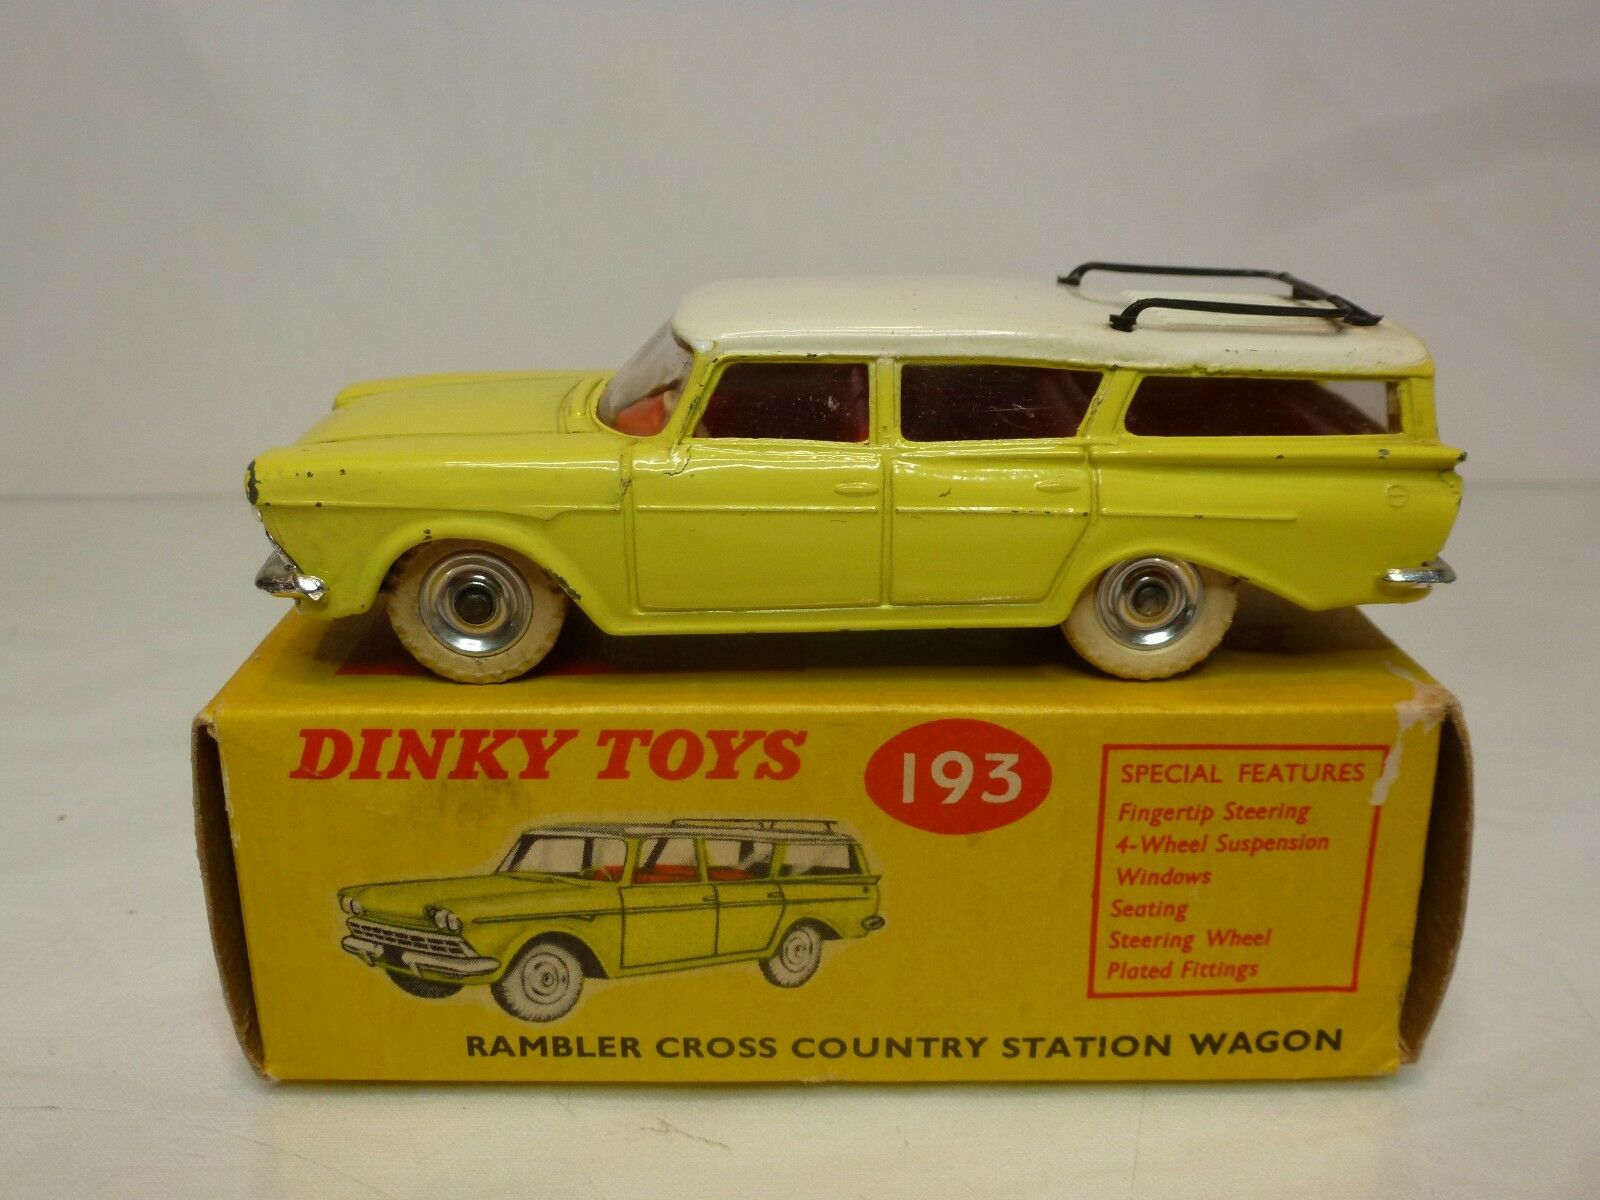 DINKY TOYS 193 RAMBLER CROSS COUNTRY STATION WAGON - jaune 1 43 - EXCELLENT IB